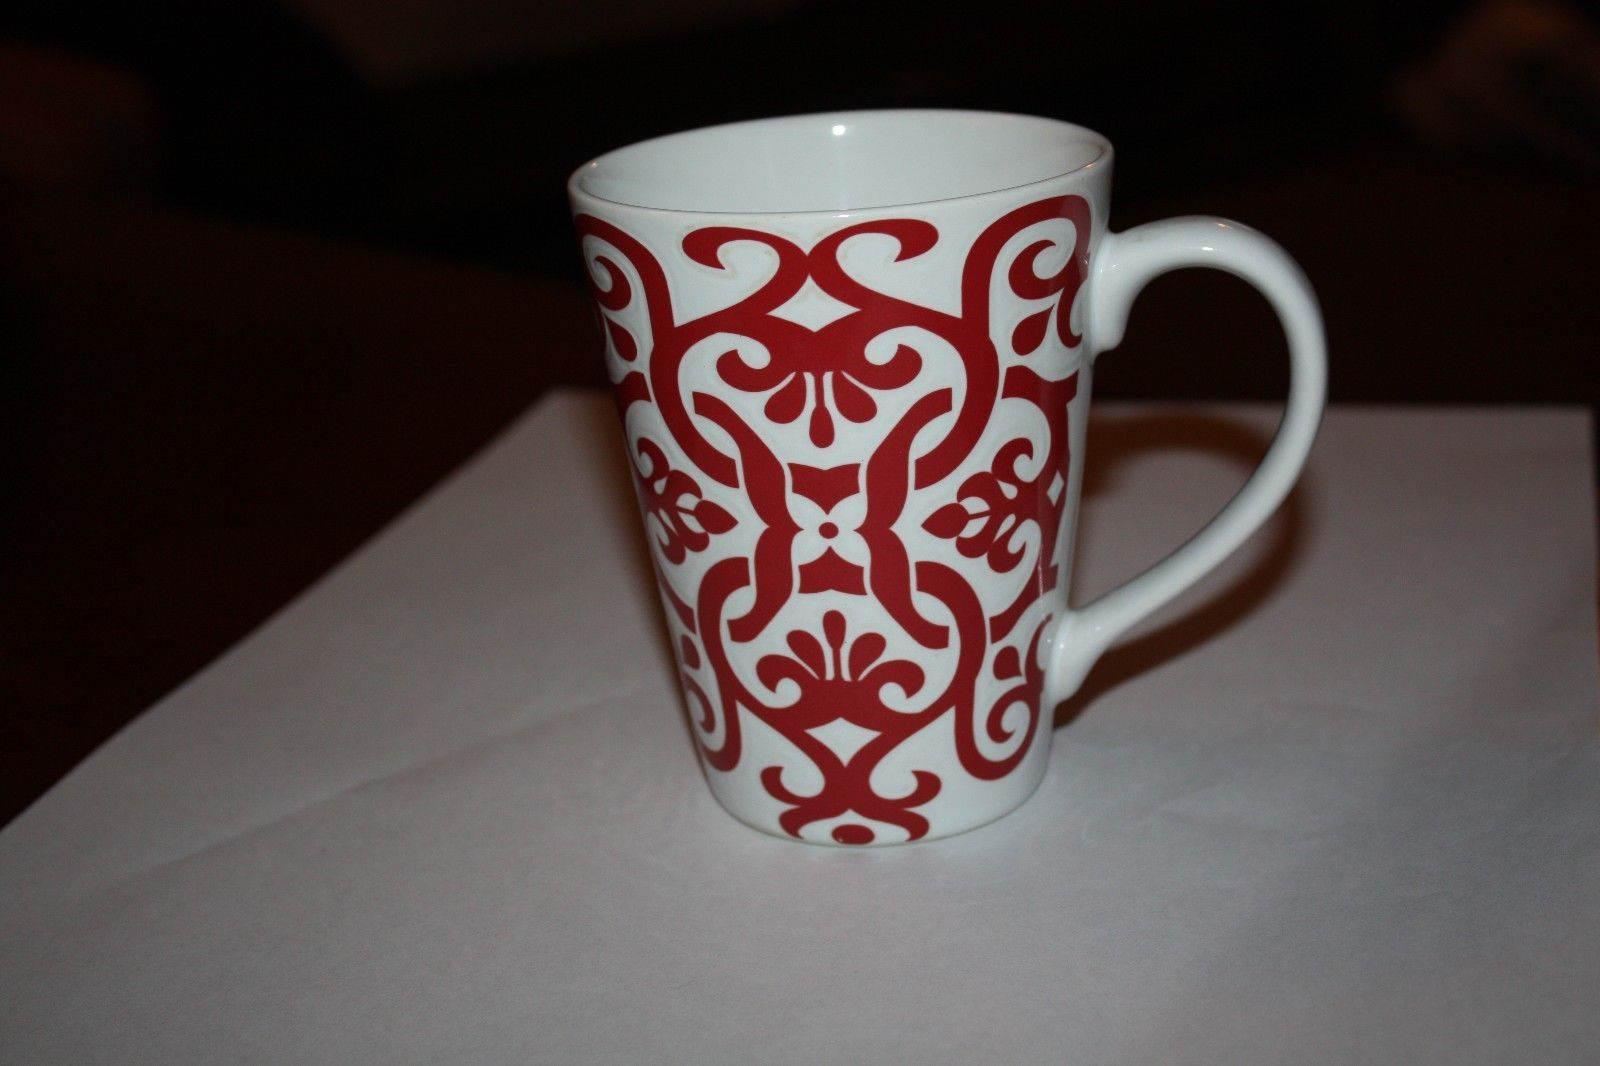 ROSCHER TUZANI Red & White Scroll Coffee Cup Mug For Sale - Item ...